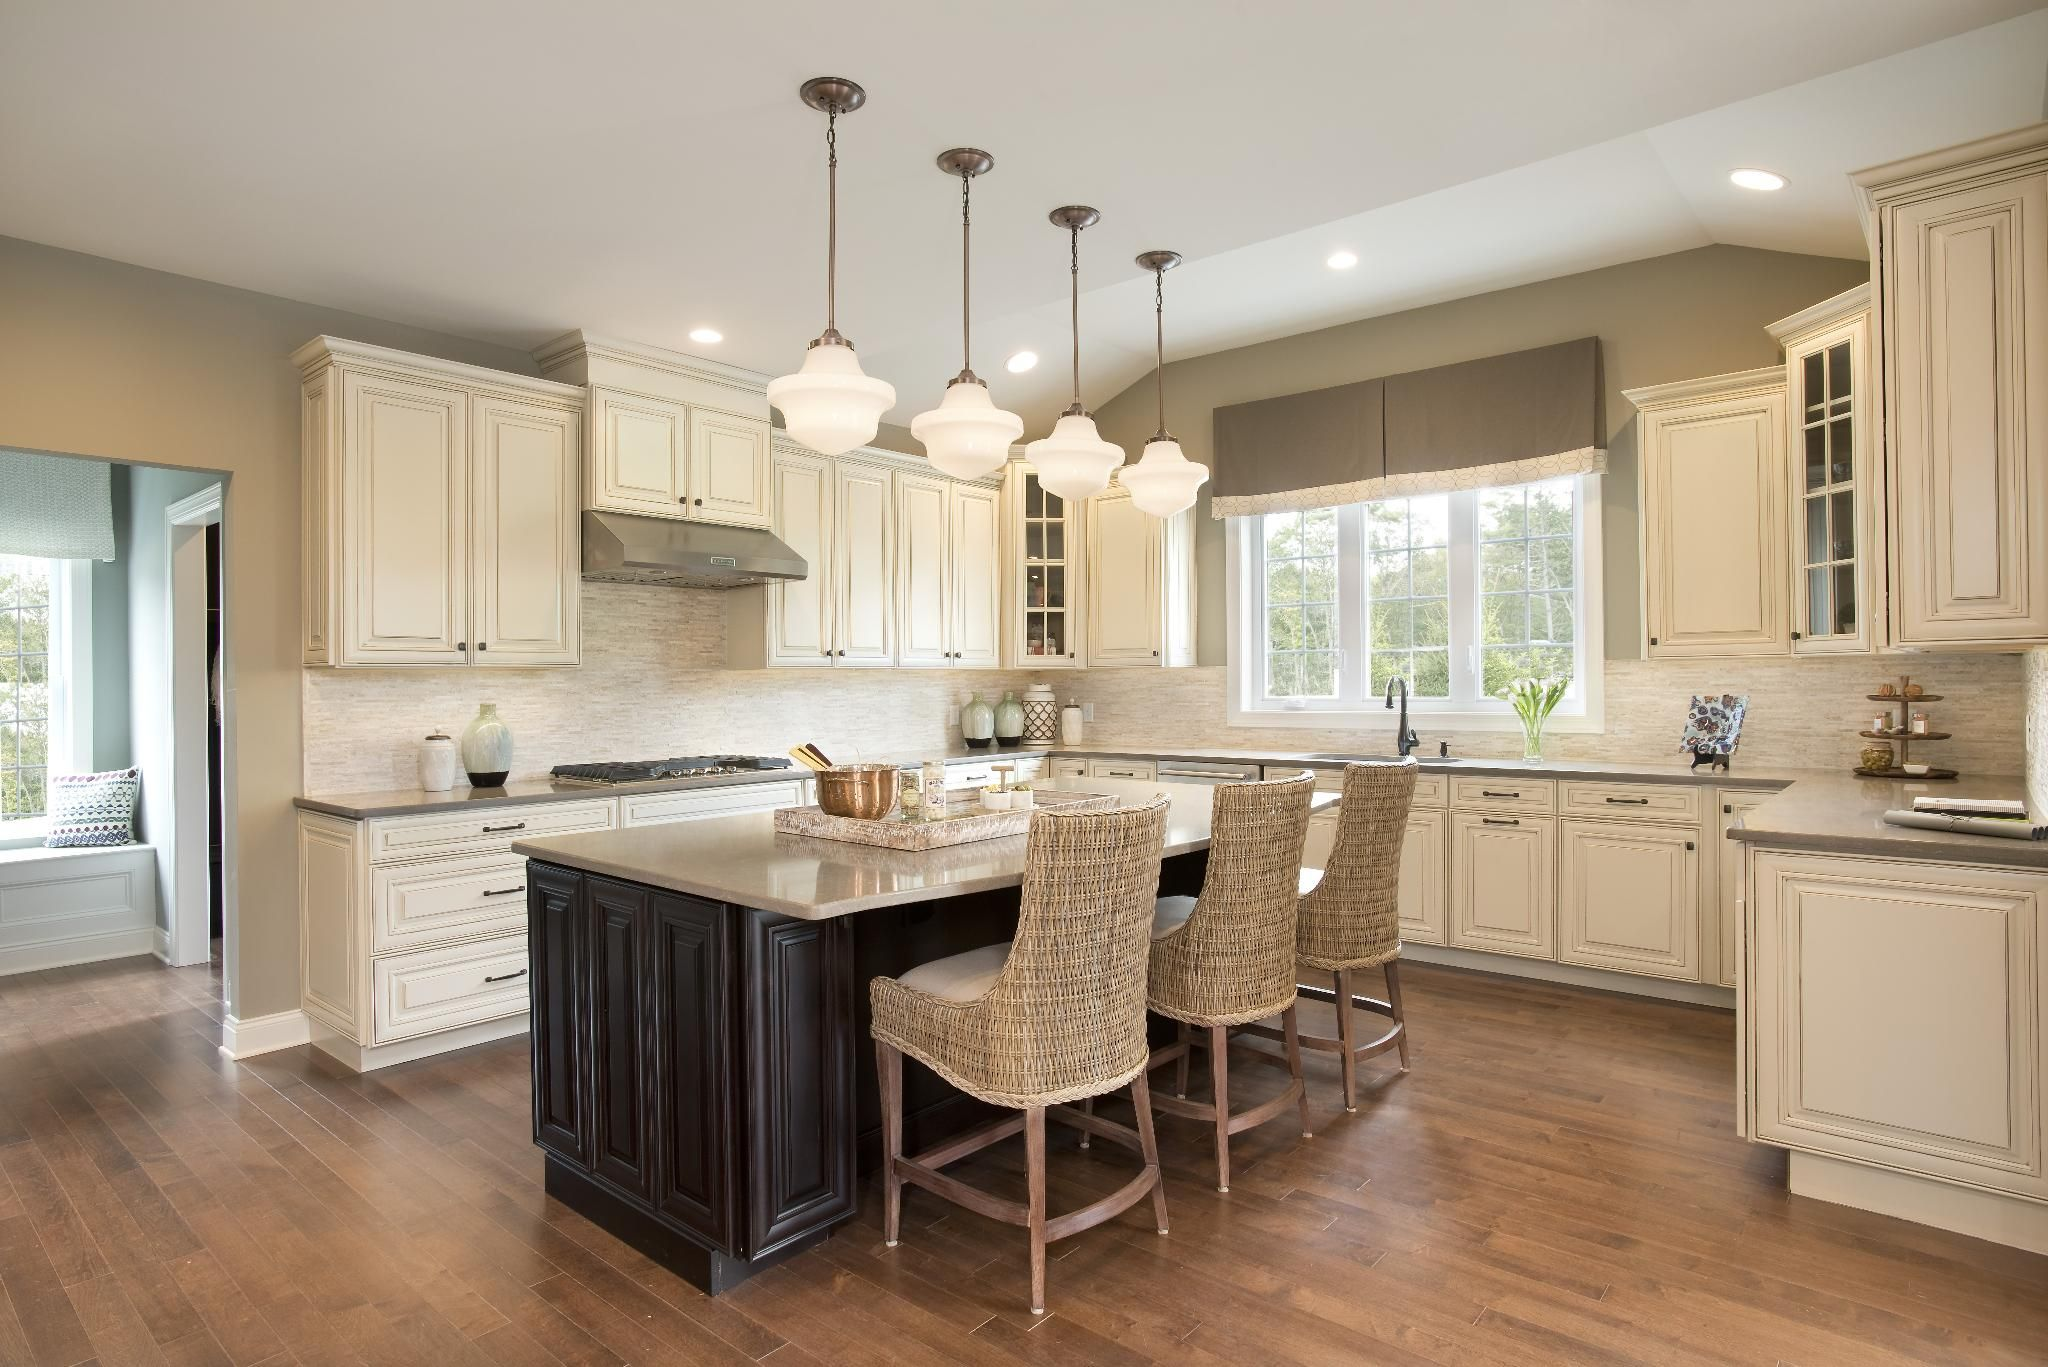 Toll Brothers The Preserve at Canton, MA | Luxury kitchens ...